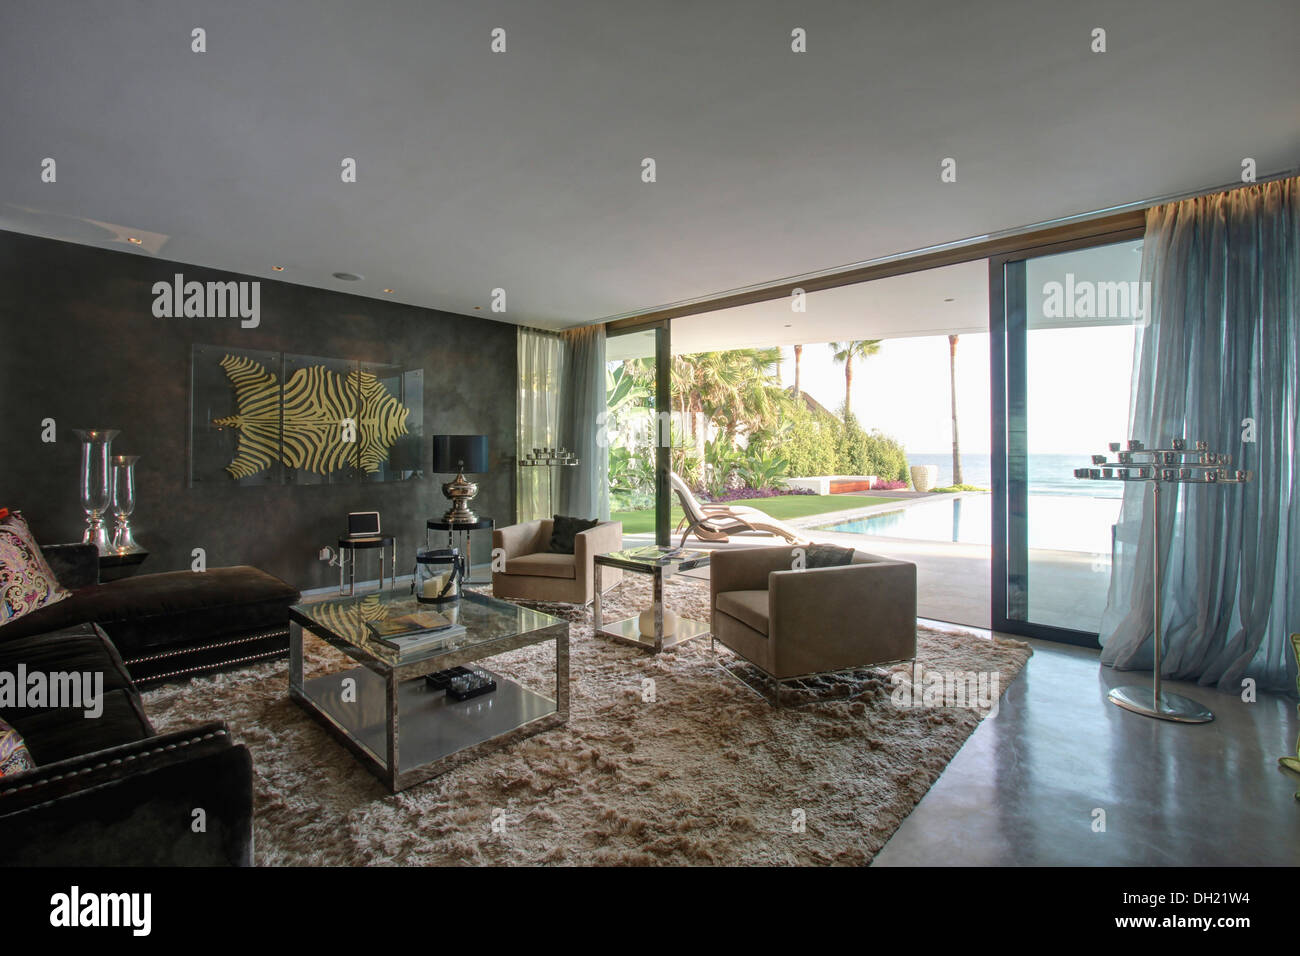 Armchairs and glass coffee table on shag pile carpet in modern Spanish living room with silver voile drapes on glass doors - Stock Image